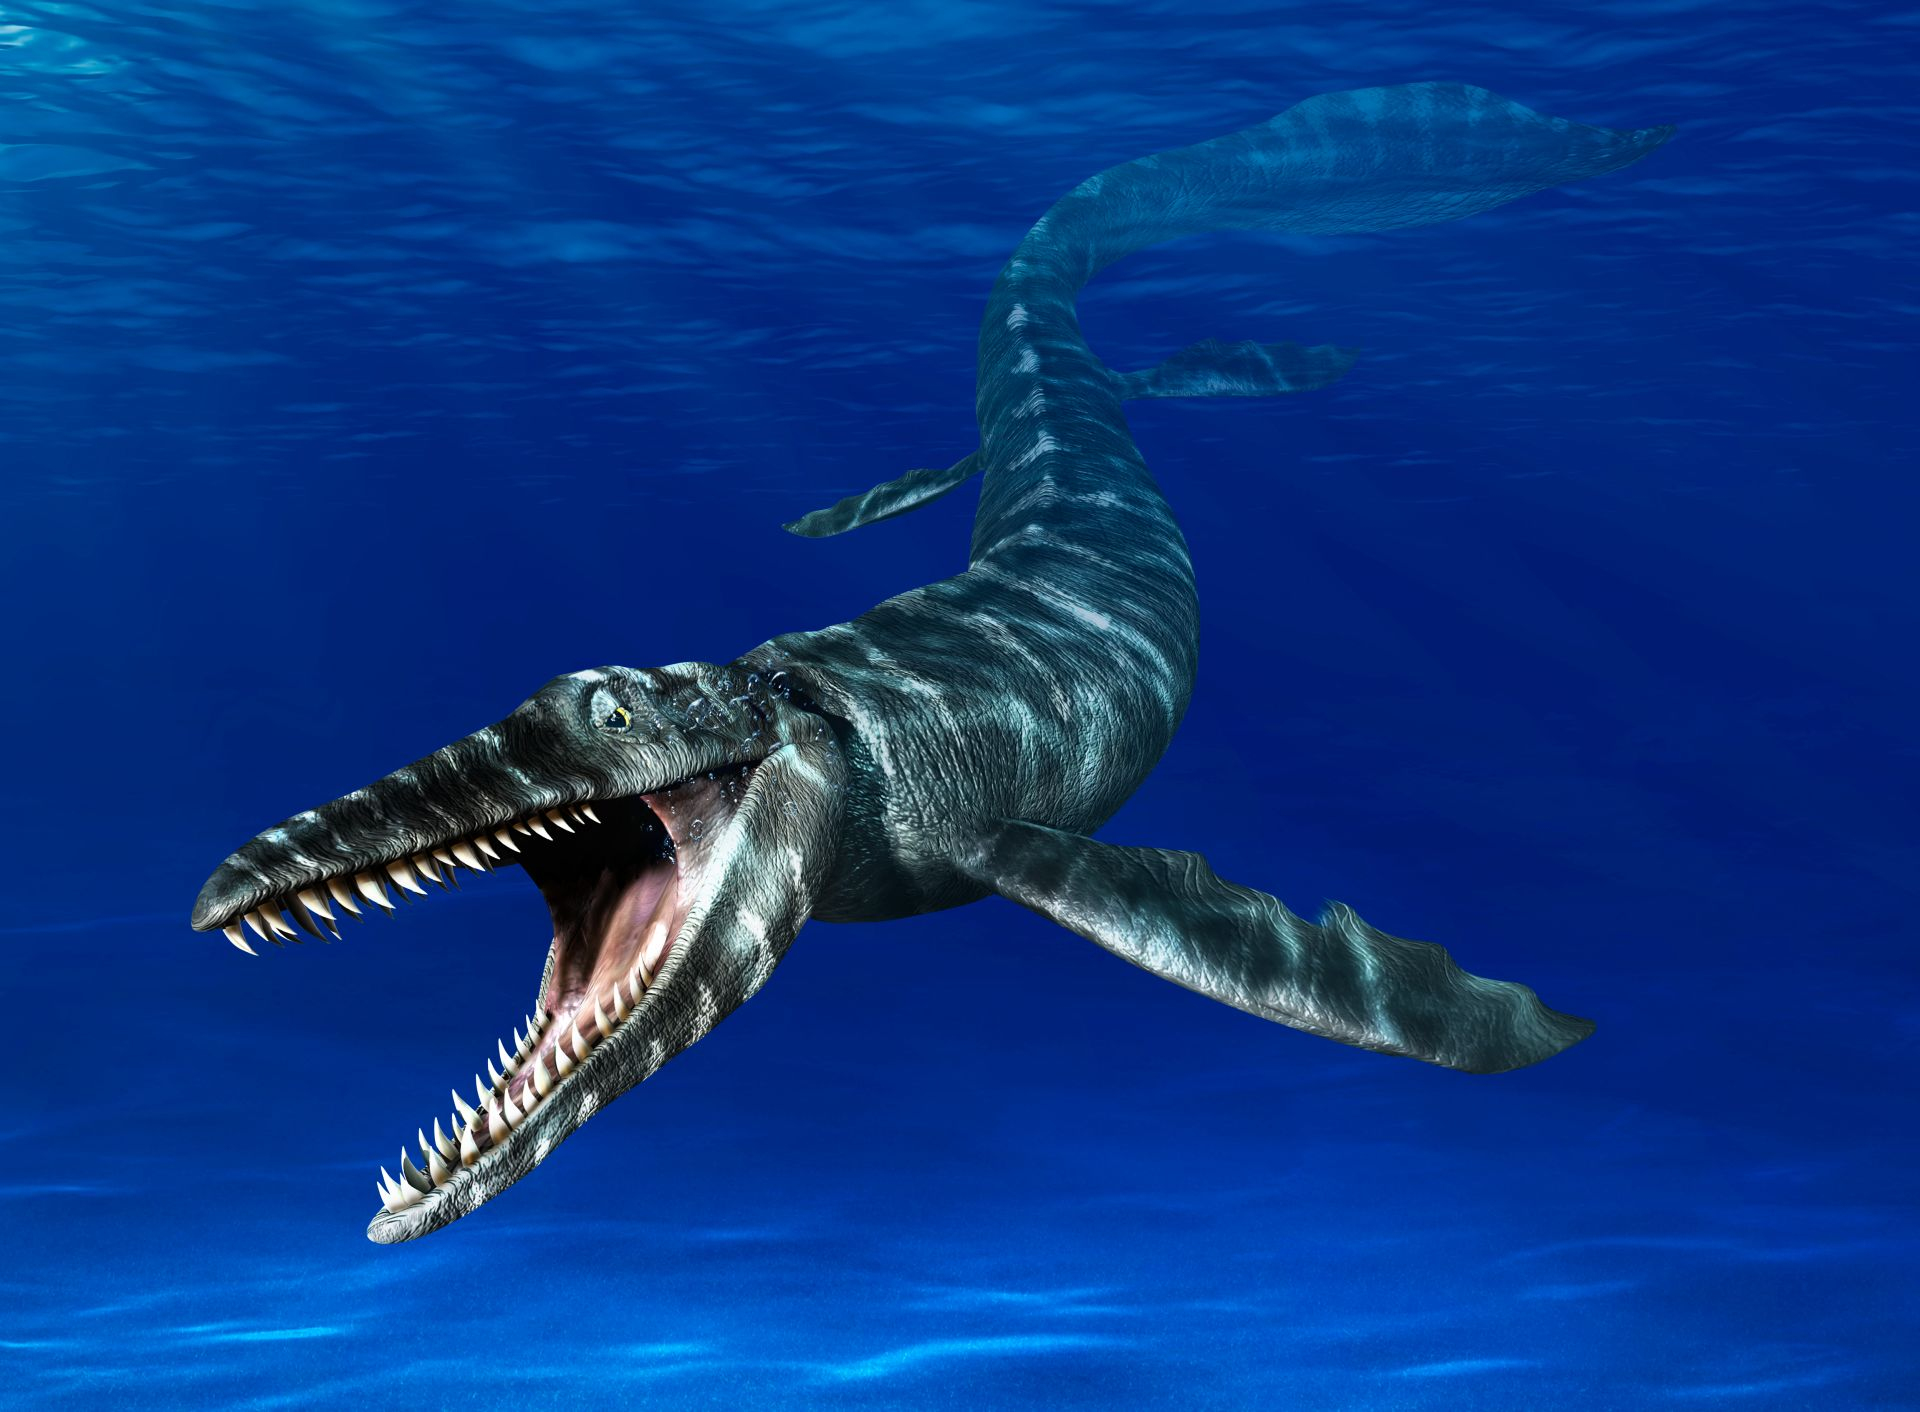 Mosasaurus | Mosasaurus Facts | DK Find Out